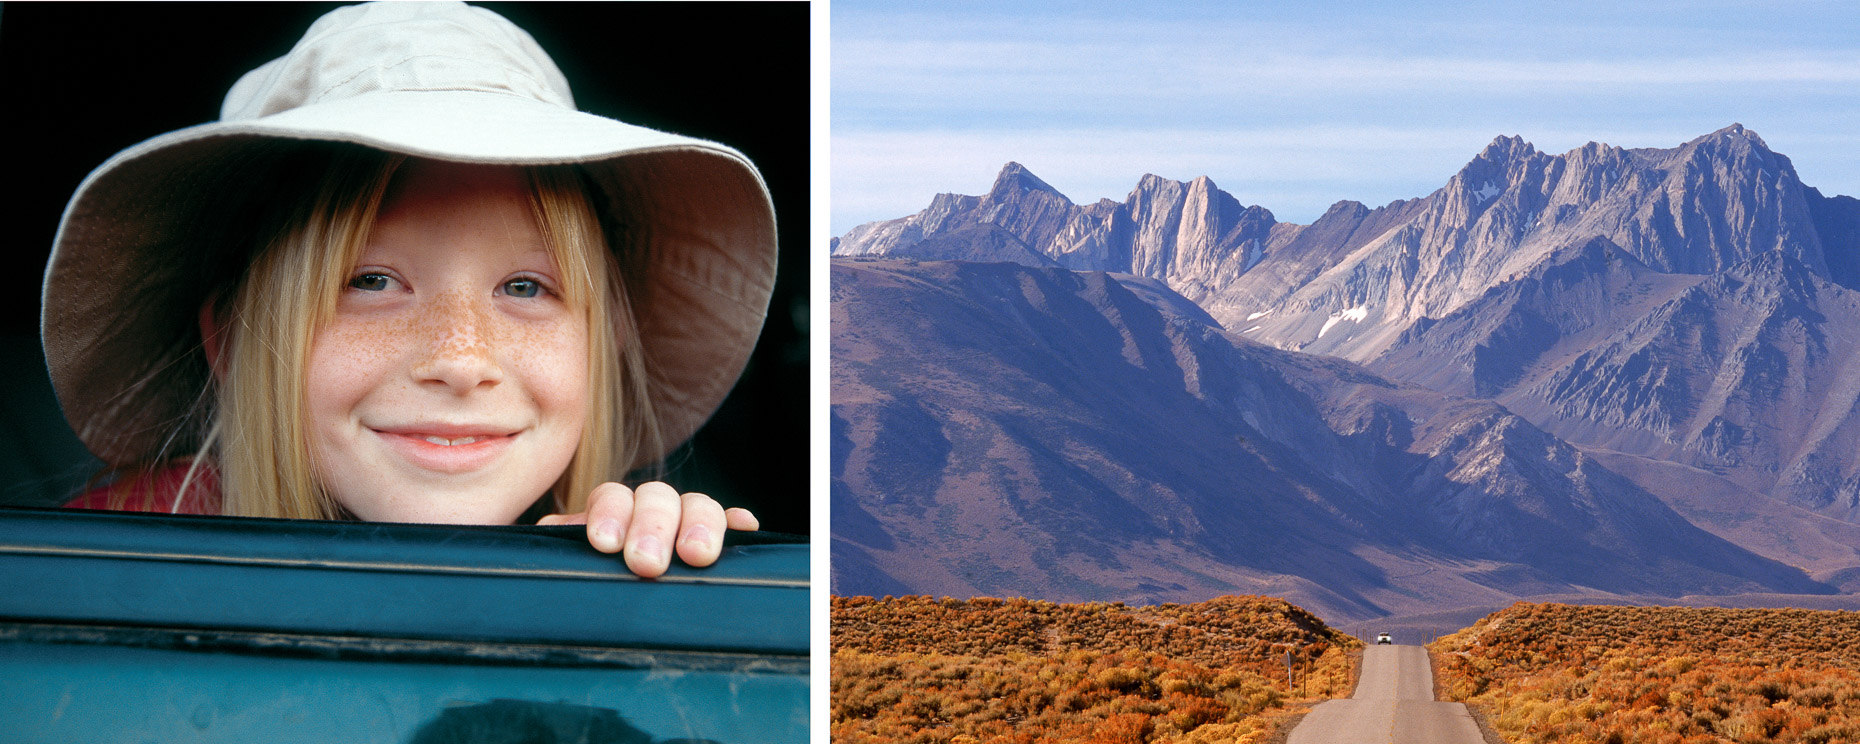 Diptych consisting of two images: girl wearing hat looking out card window paired with car on long road leading to dramatic mountain range in Owens Valley, California by David Zaitz